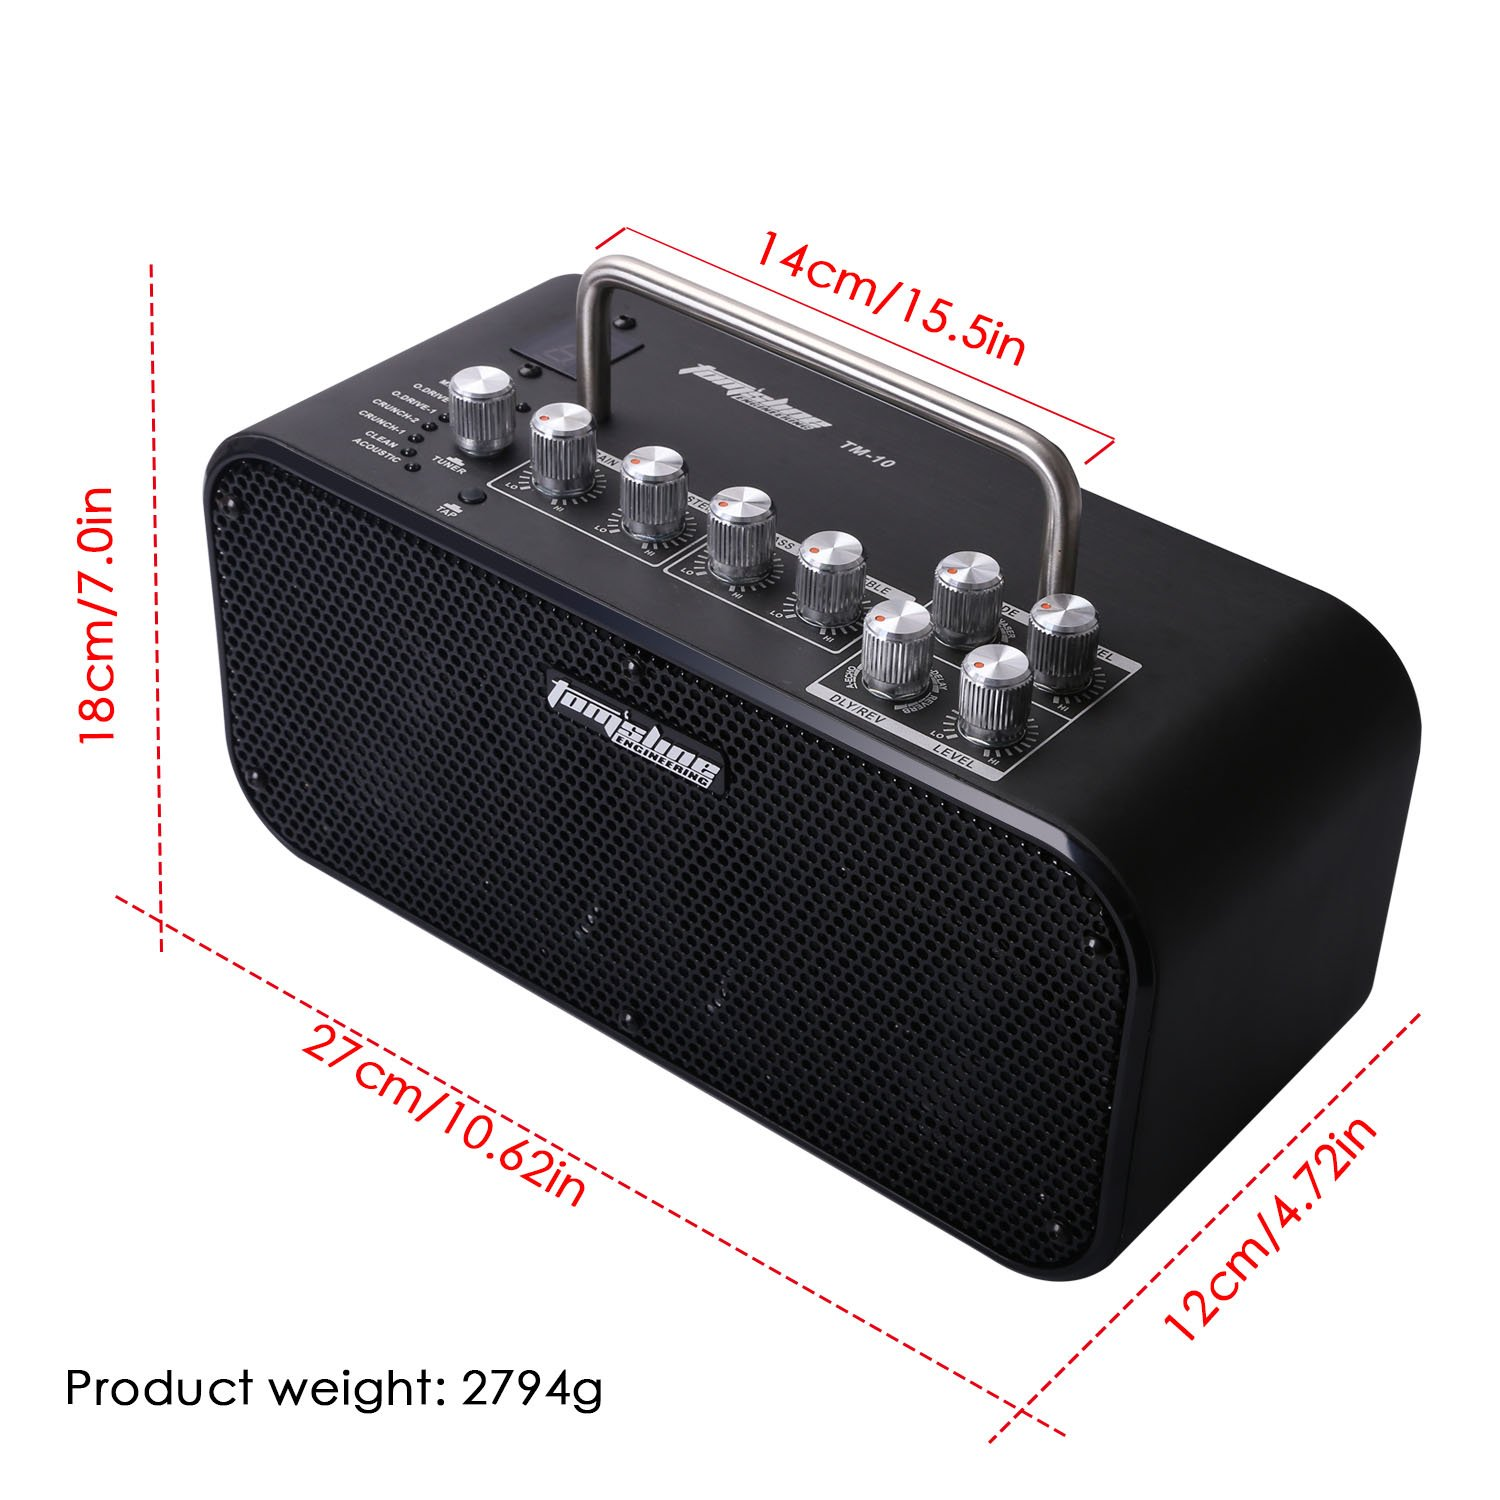 Amazon.com: Stereo Guitar Amp AROMA 10W Amplifier Built-in Tuner Tap Foot Switch Function with Effect Volume Tone Control: Home Audio & Theater